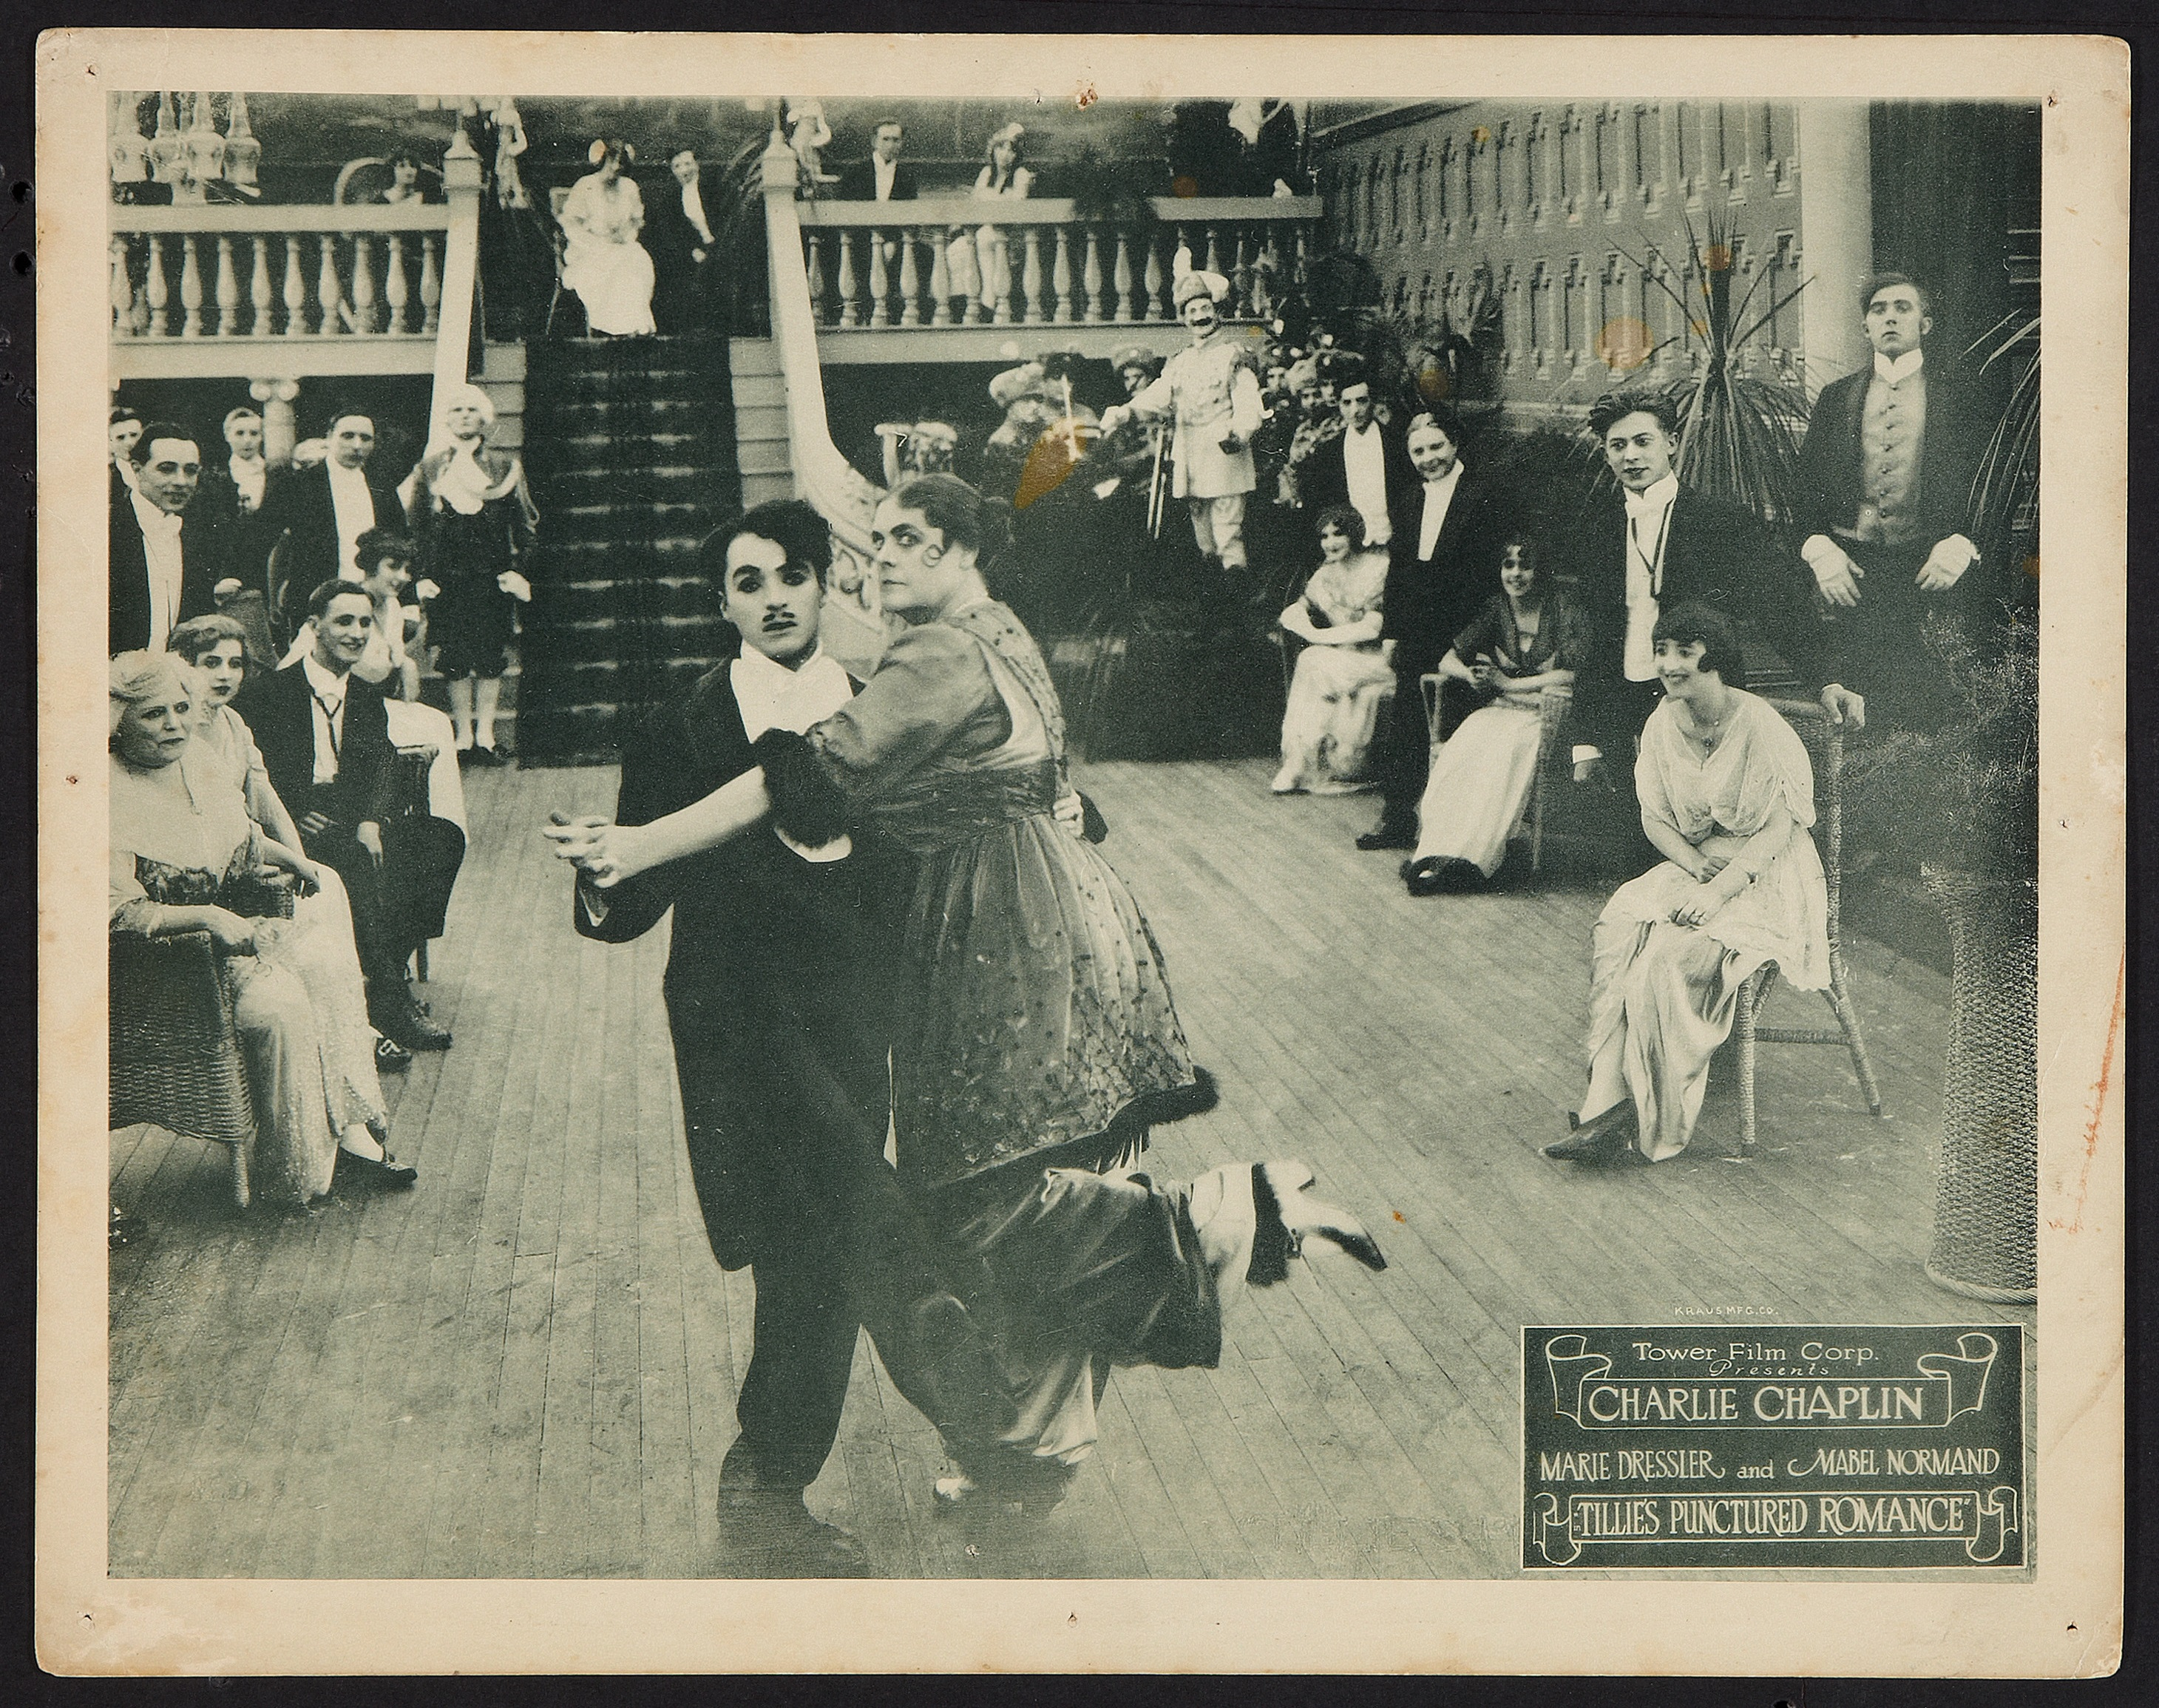 Charlie Chaplin and Marie Dressler in Tillie's Punctured Romance (1914) US 1918 reissue lobby card